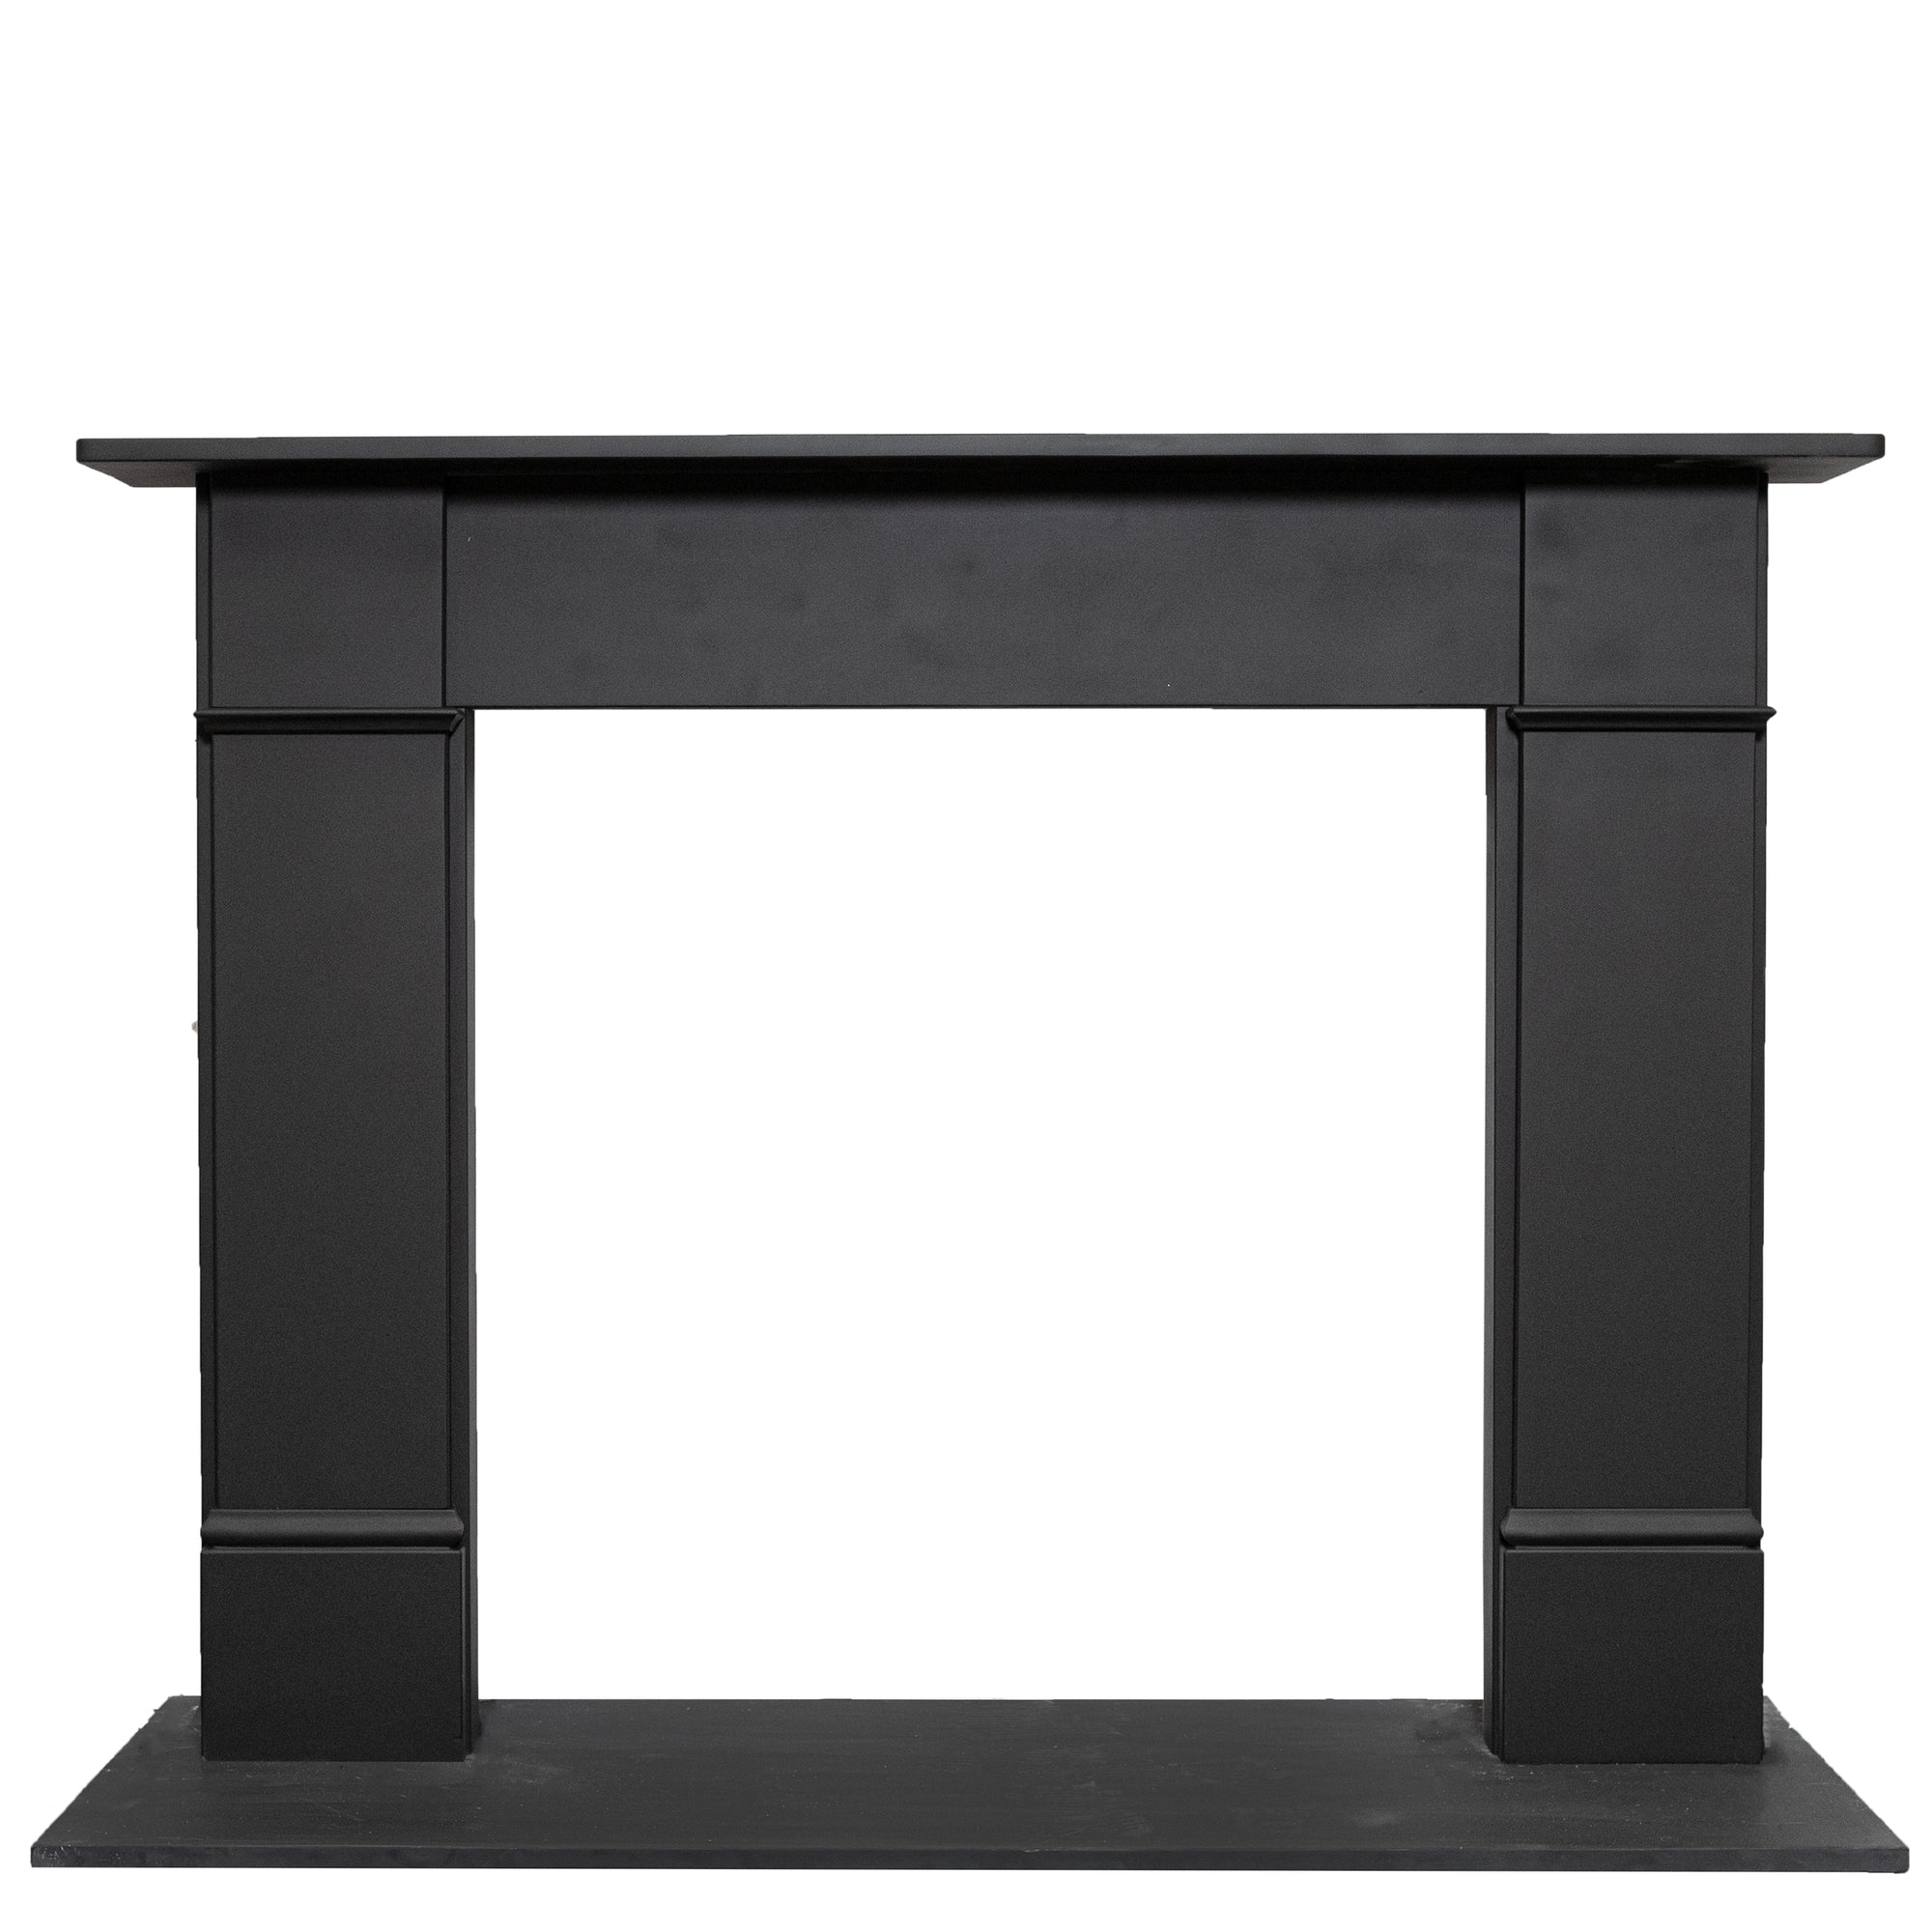 Late Georgian | Early Victorian Style Black Slate Chimneypiece | The Architectural Forum